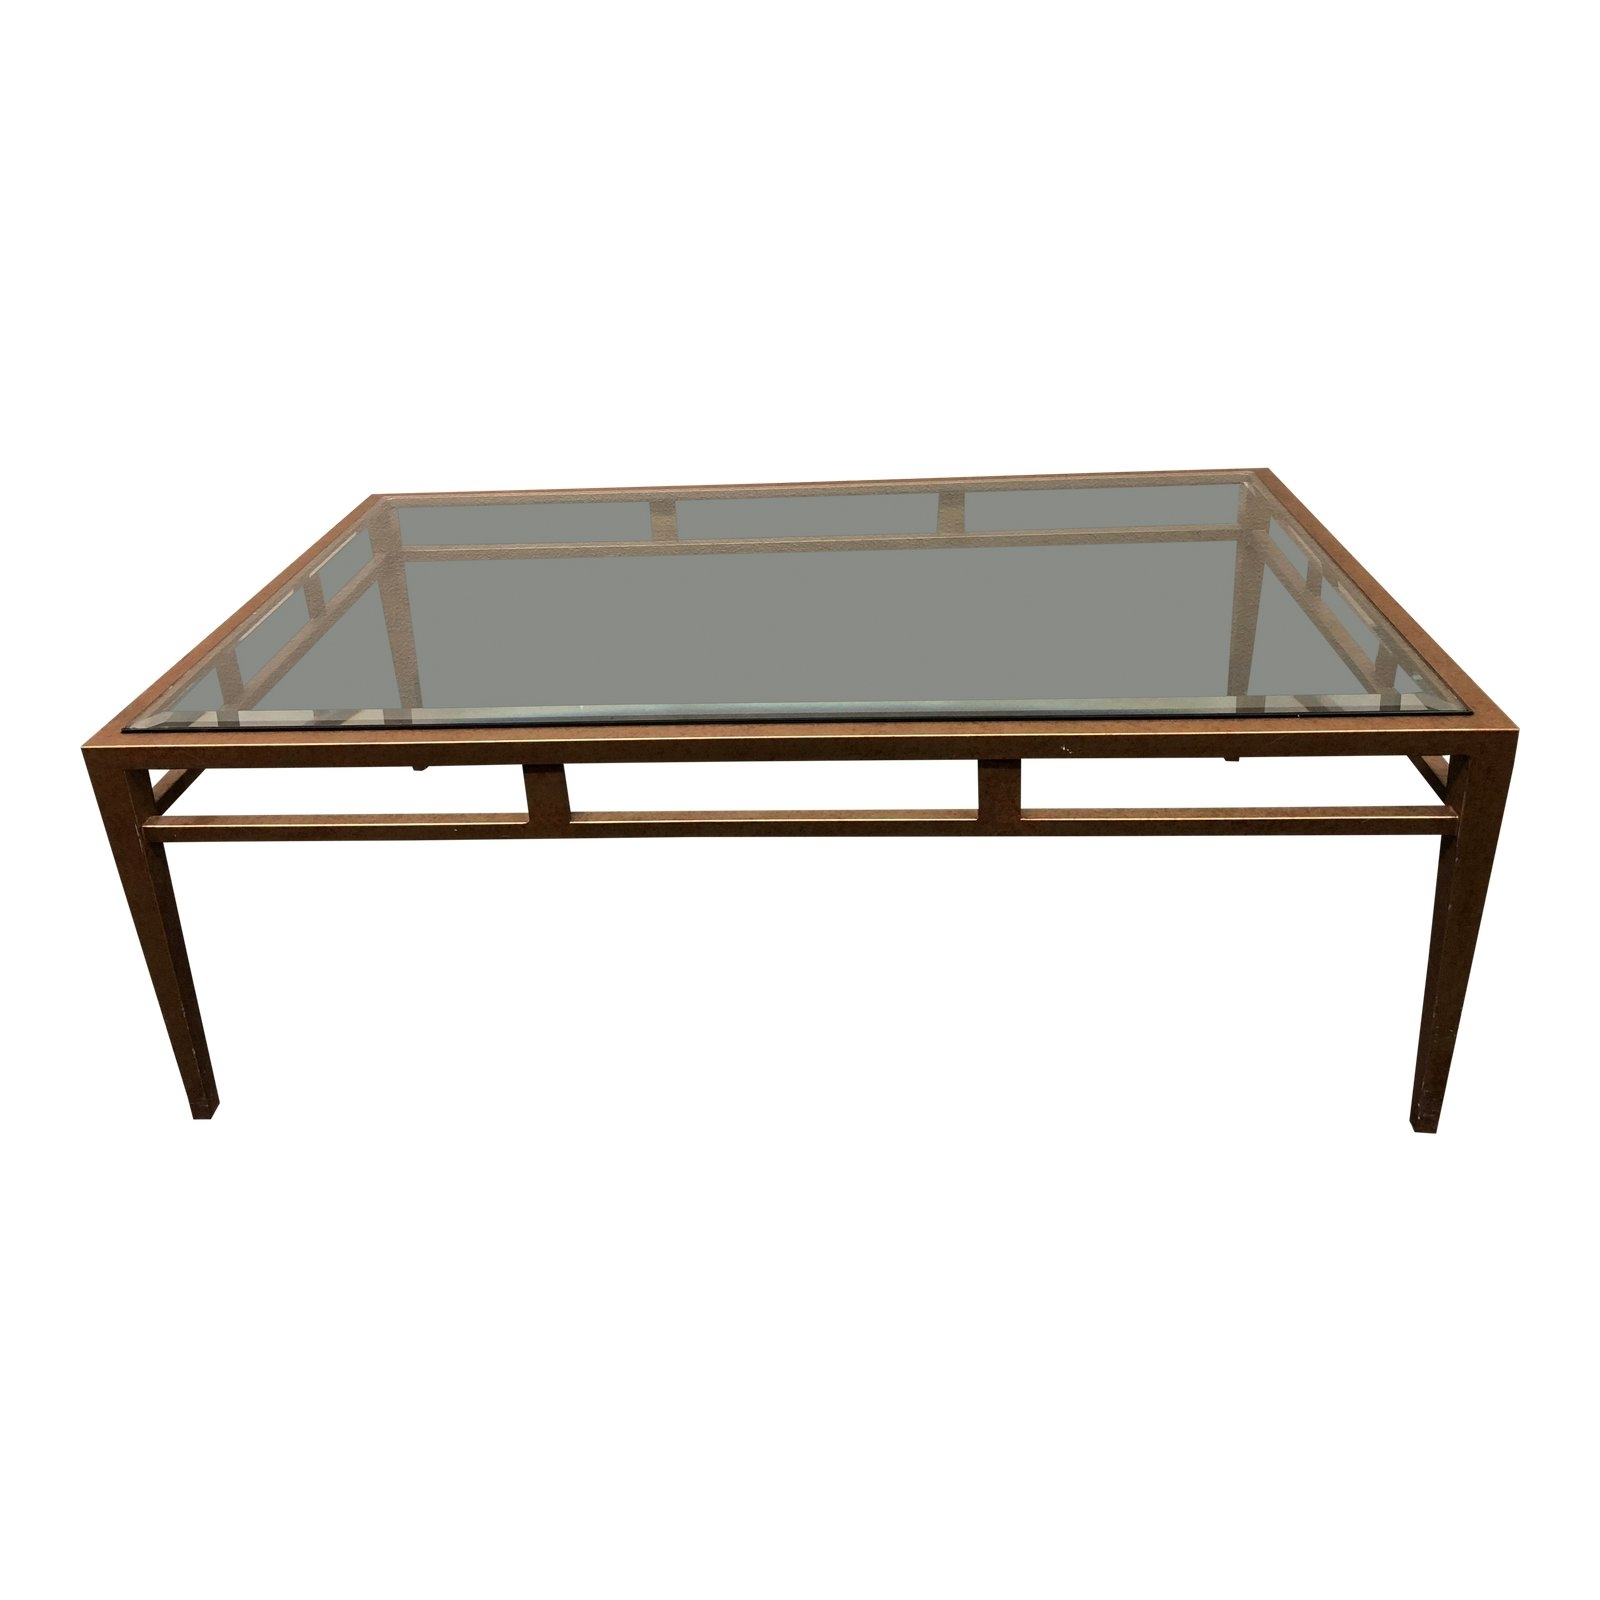 Custom Brass Finish Coffee Table. Original Price: $3,500.00 - Design pertaining to Rectangular Brass Finish and Glass Coffee Tables (Image 8 of 30)